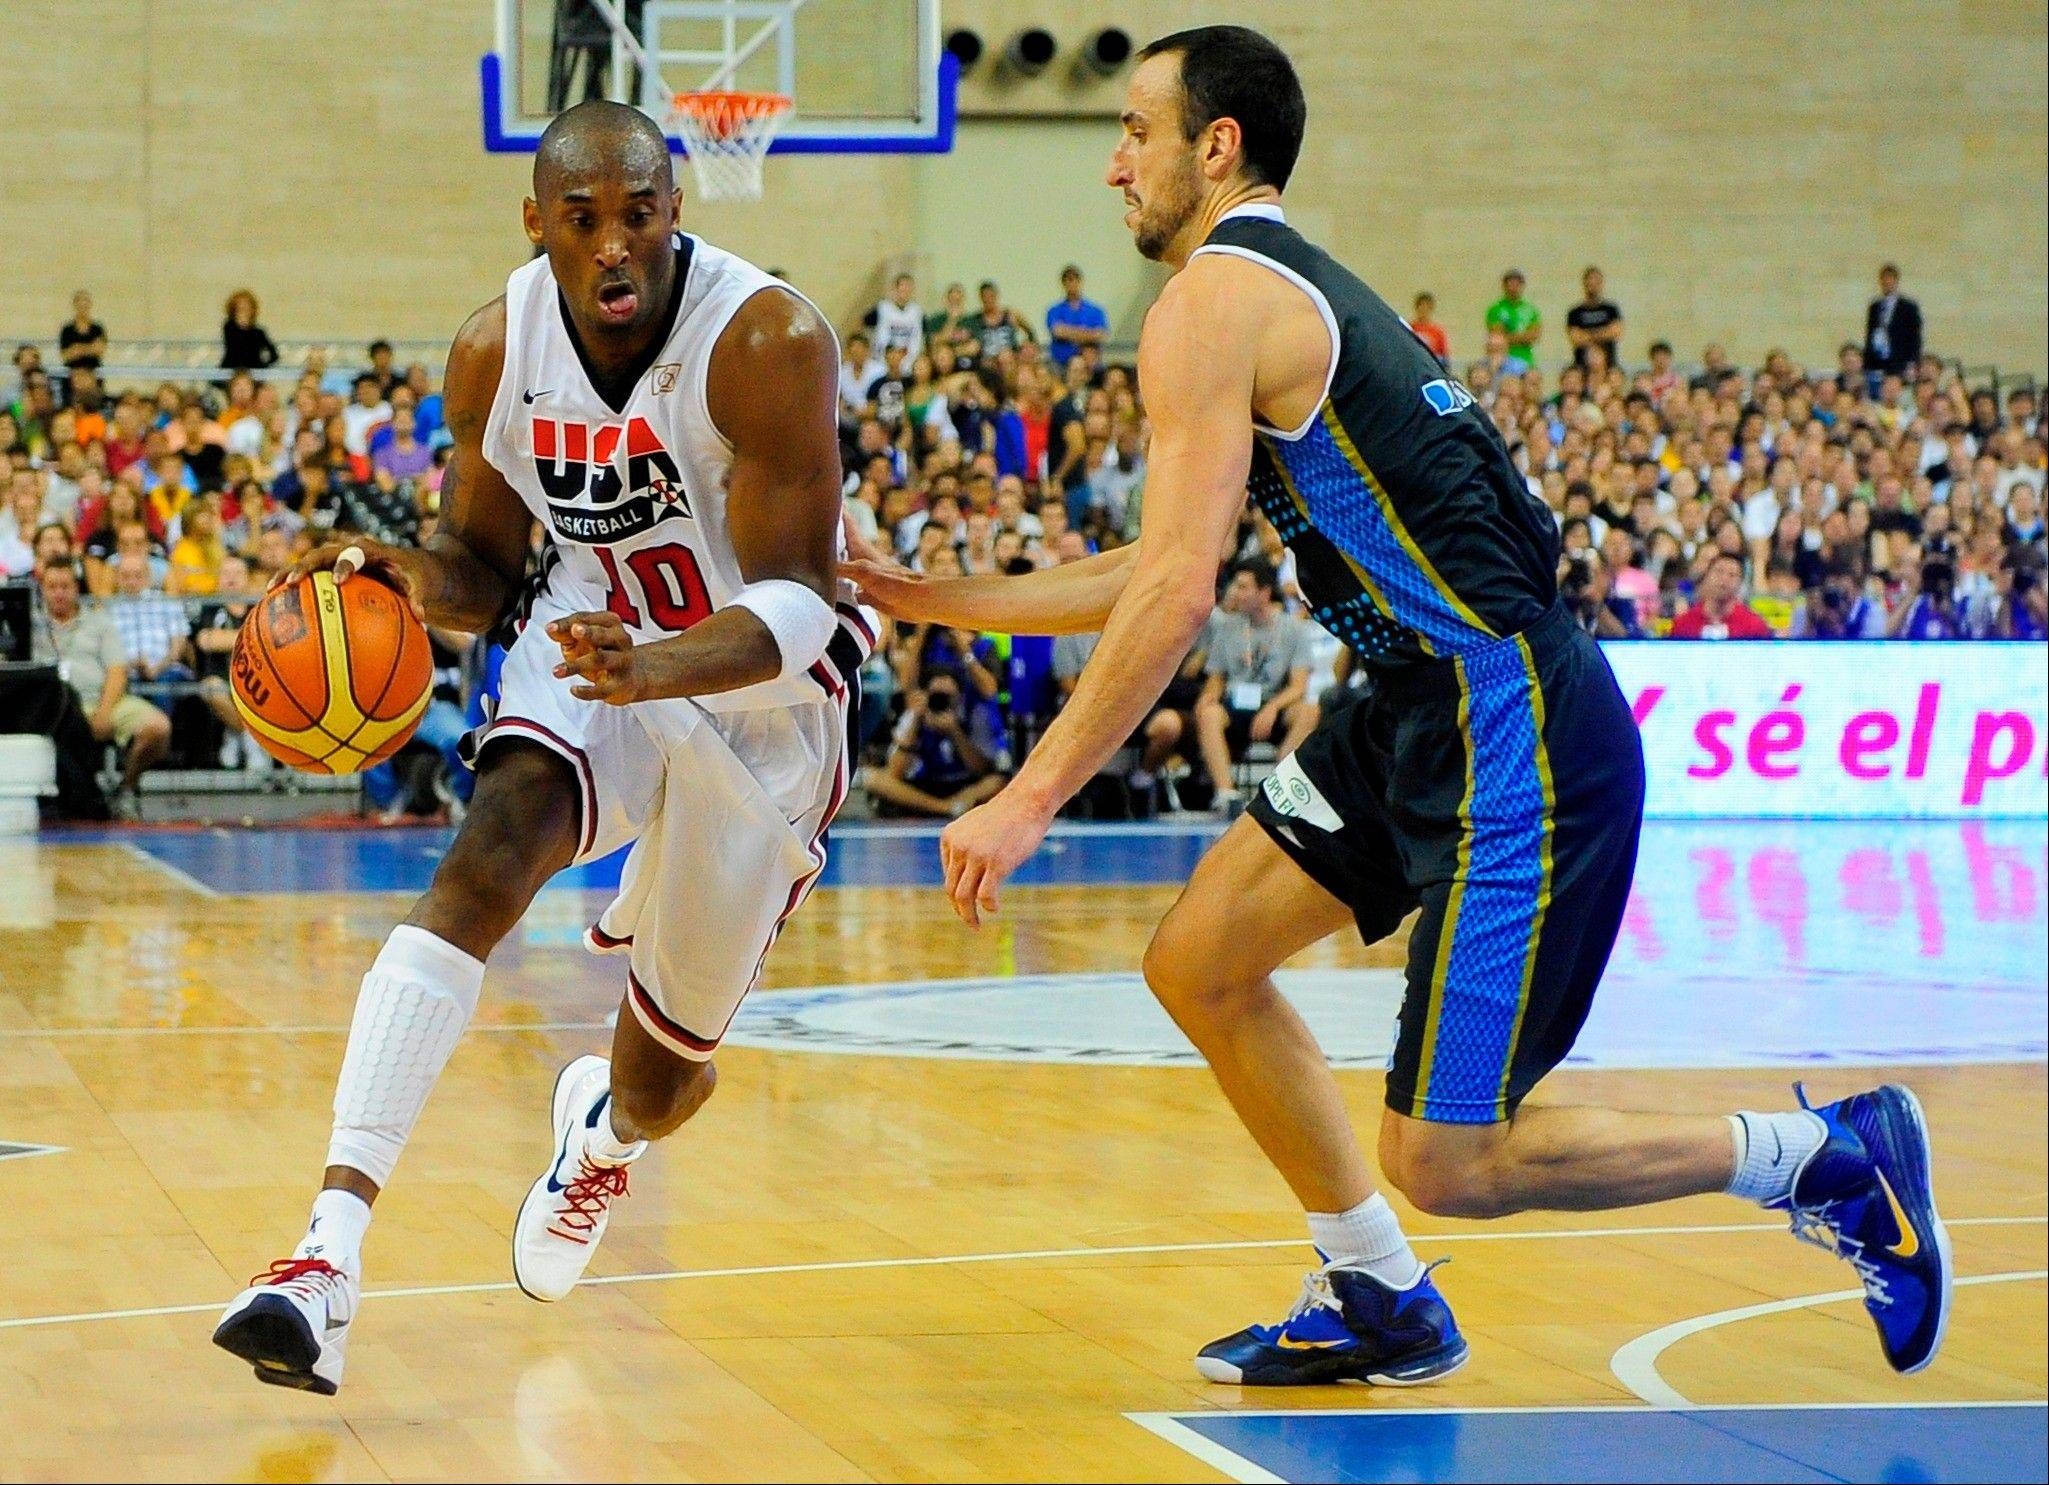 The U.S. team�s Kobe Bryant drives against Argentina�s Emmanuel Ginobili during their exhibition game Sunday in Barcelona, Spain.